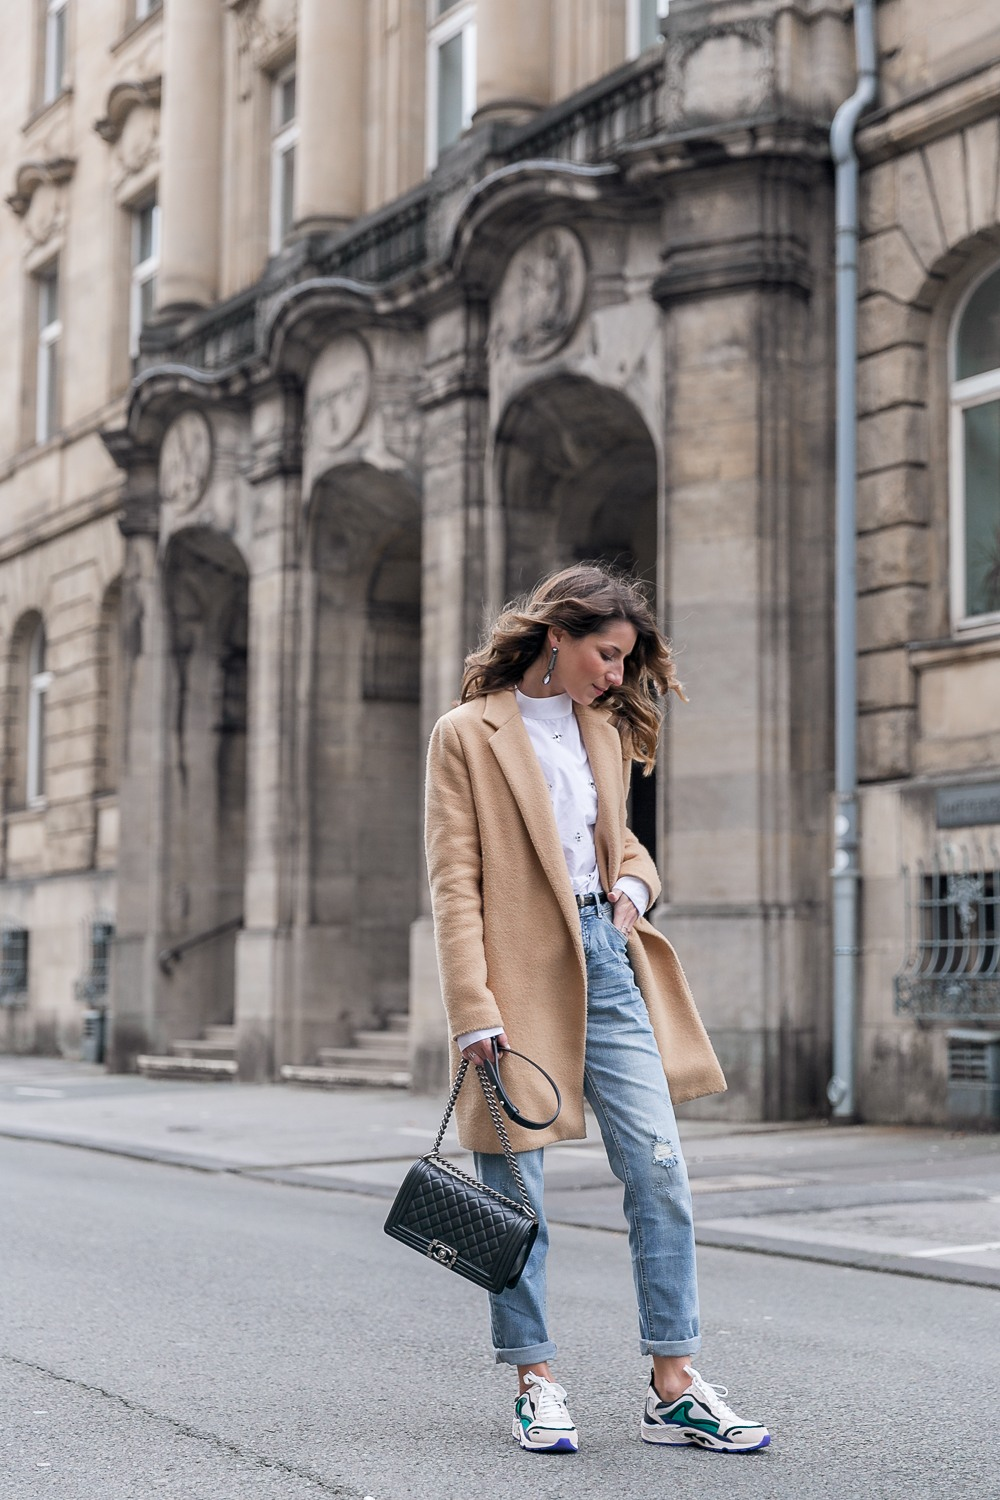 sandro sneakers girlfriend jeans coat zara outfit autumn street style casual chic blouse chanel bag